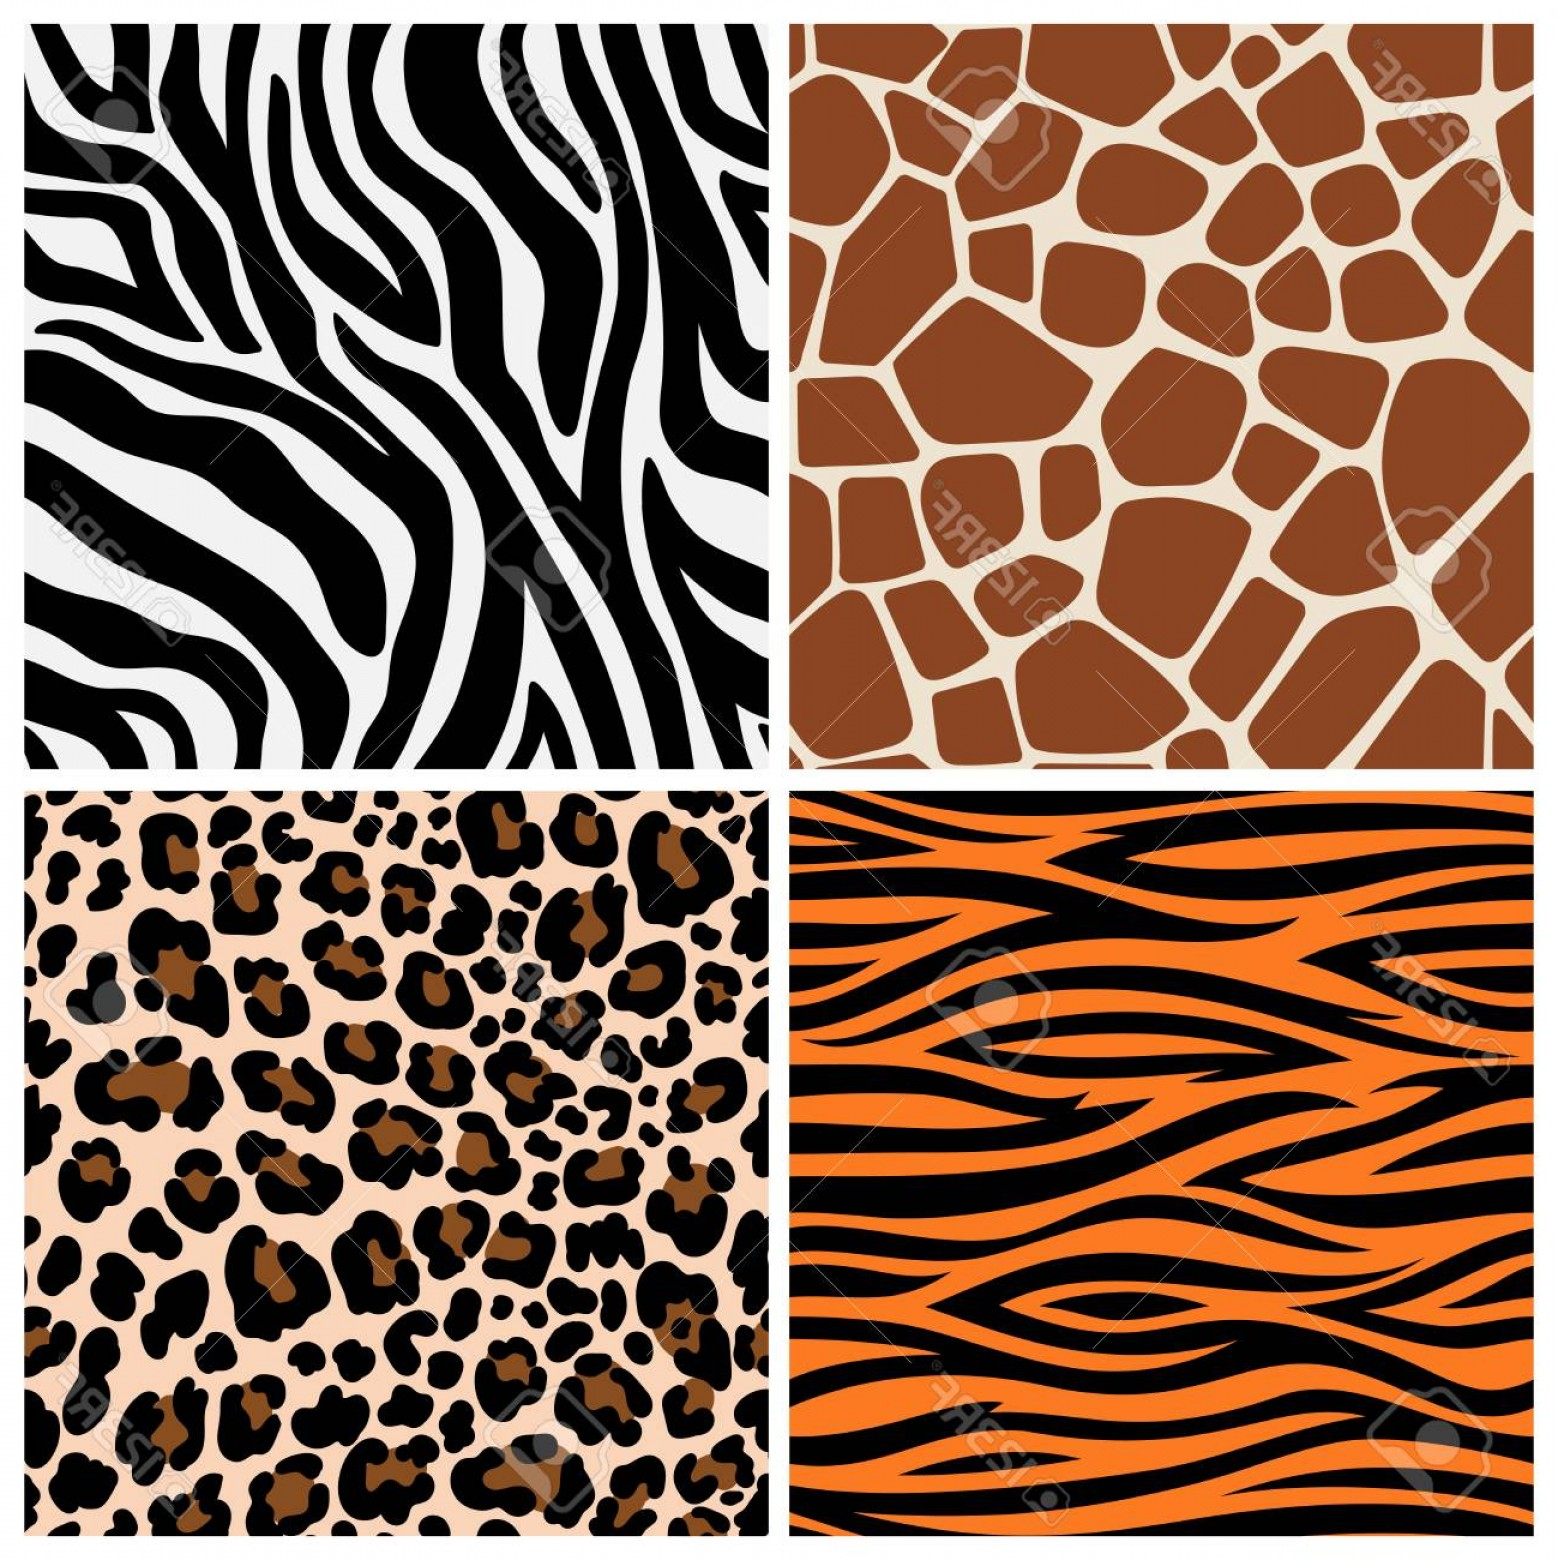 Jaguar Spots Vector: Photostock Vector Zebra Giraffe And Leopard Patterns Vector Tiger Stripes And Jaguar Spots Fur Giraffe And Zebra Seaml